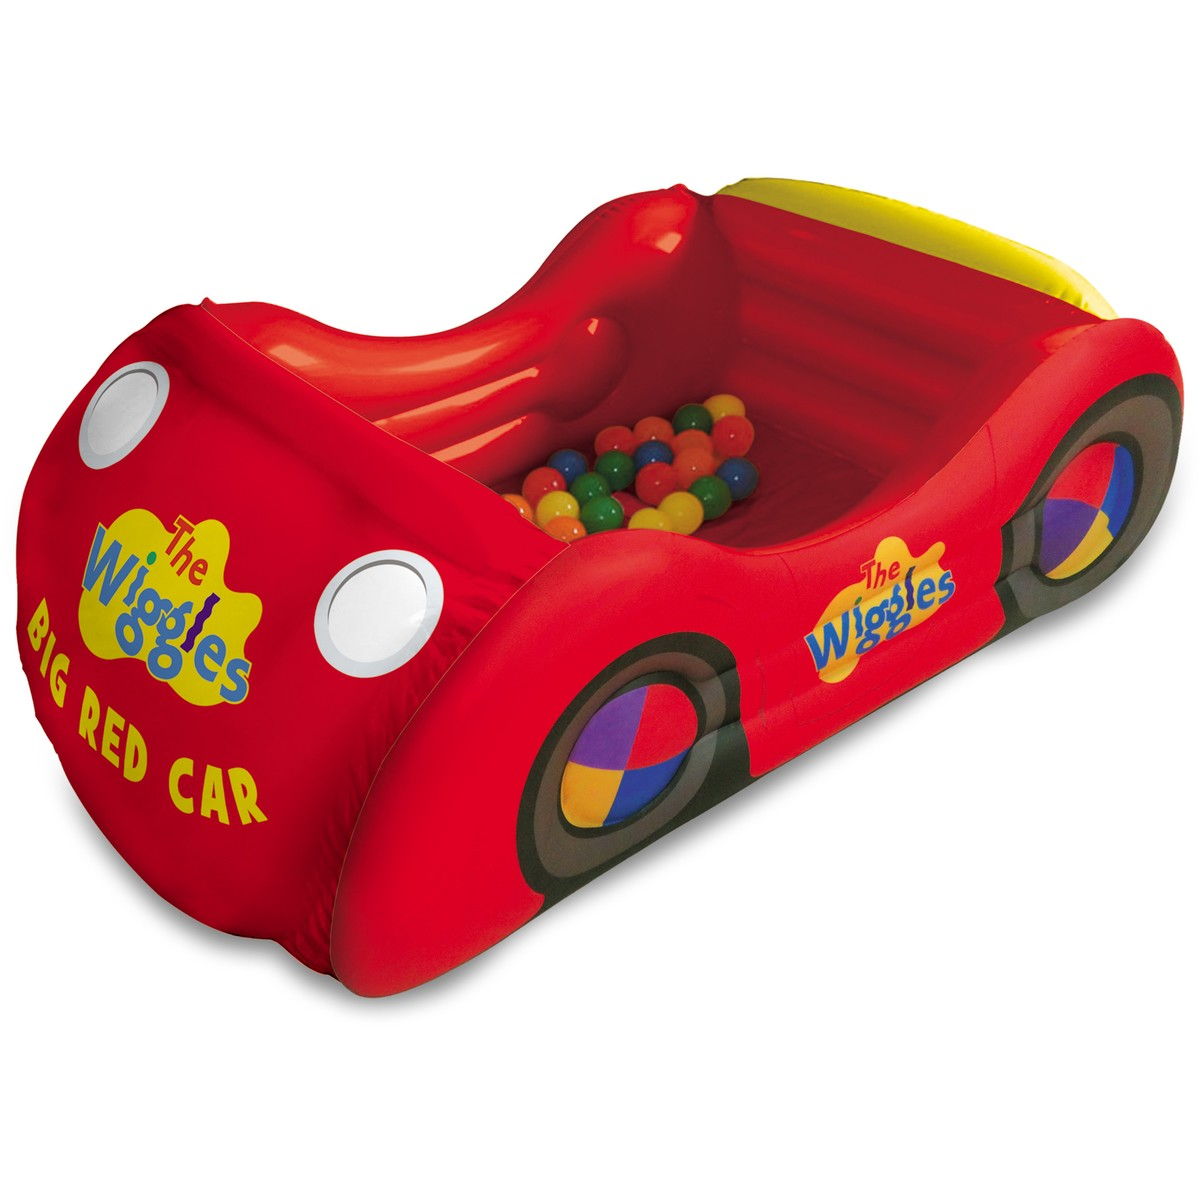 Big W Toy Cars The Wiggles Big Red Car Ball Pit Big W